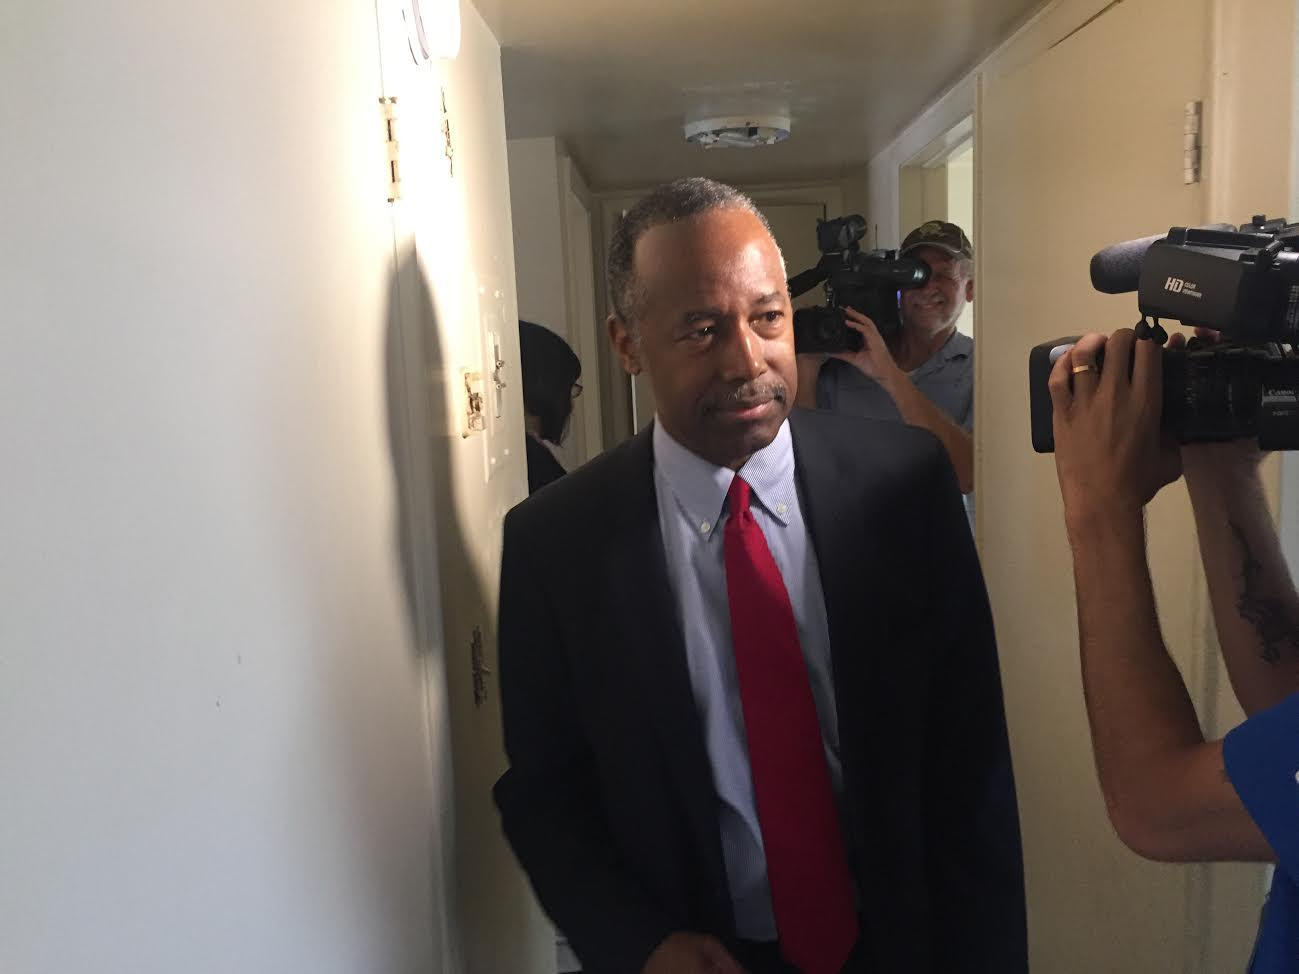 U.S. housing chief Carson stuck in elevator during 'listening tour'